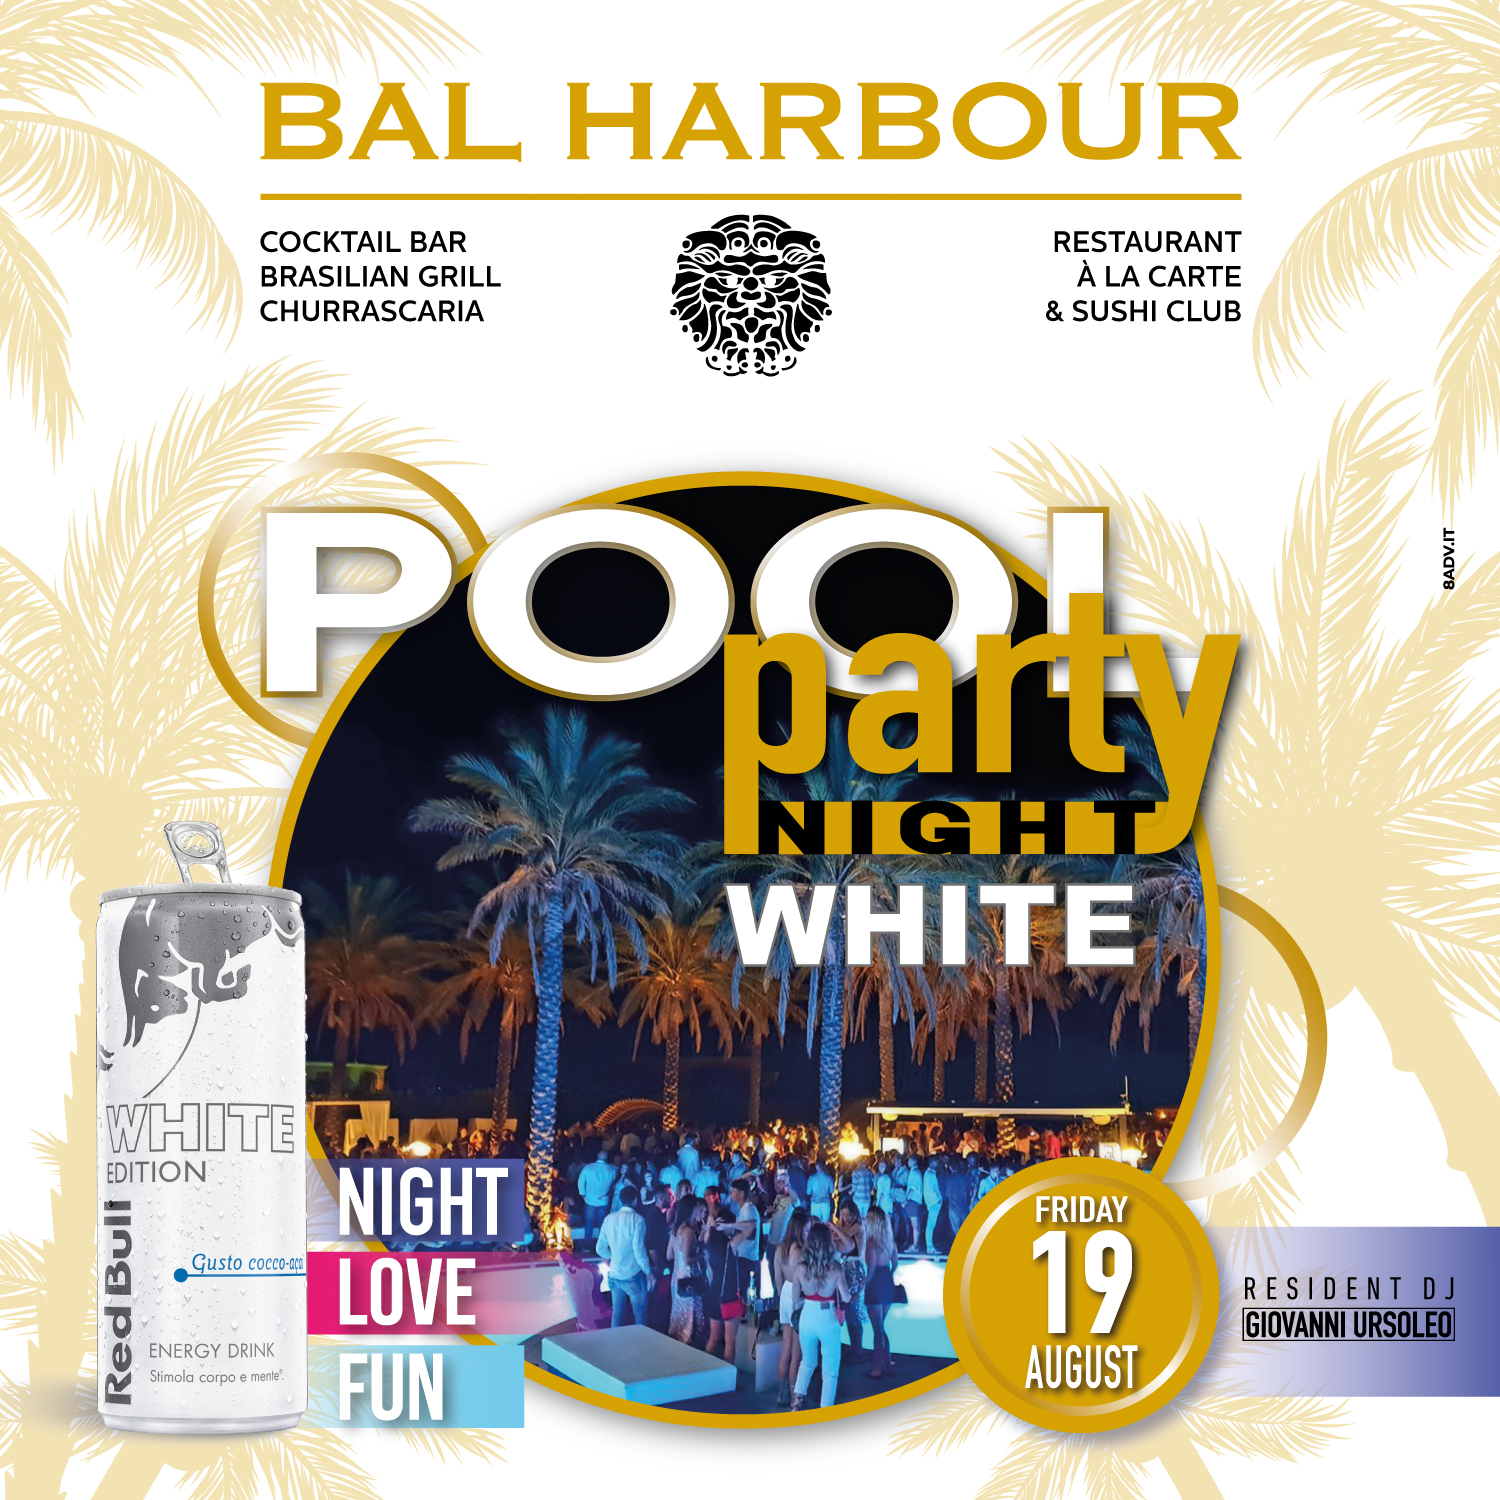 white pool party night bal harbour san teodoro summer sardegna red bull